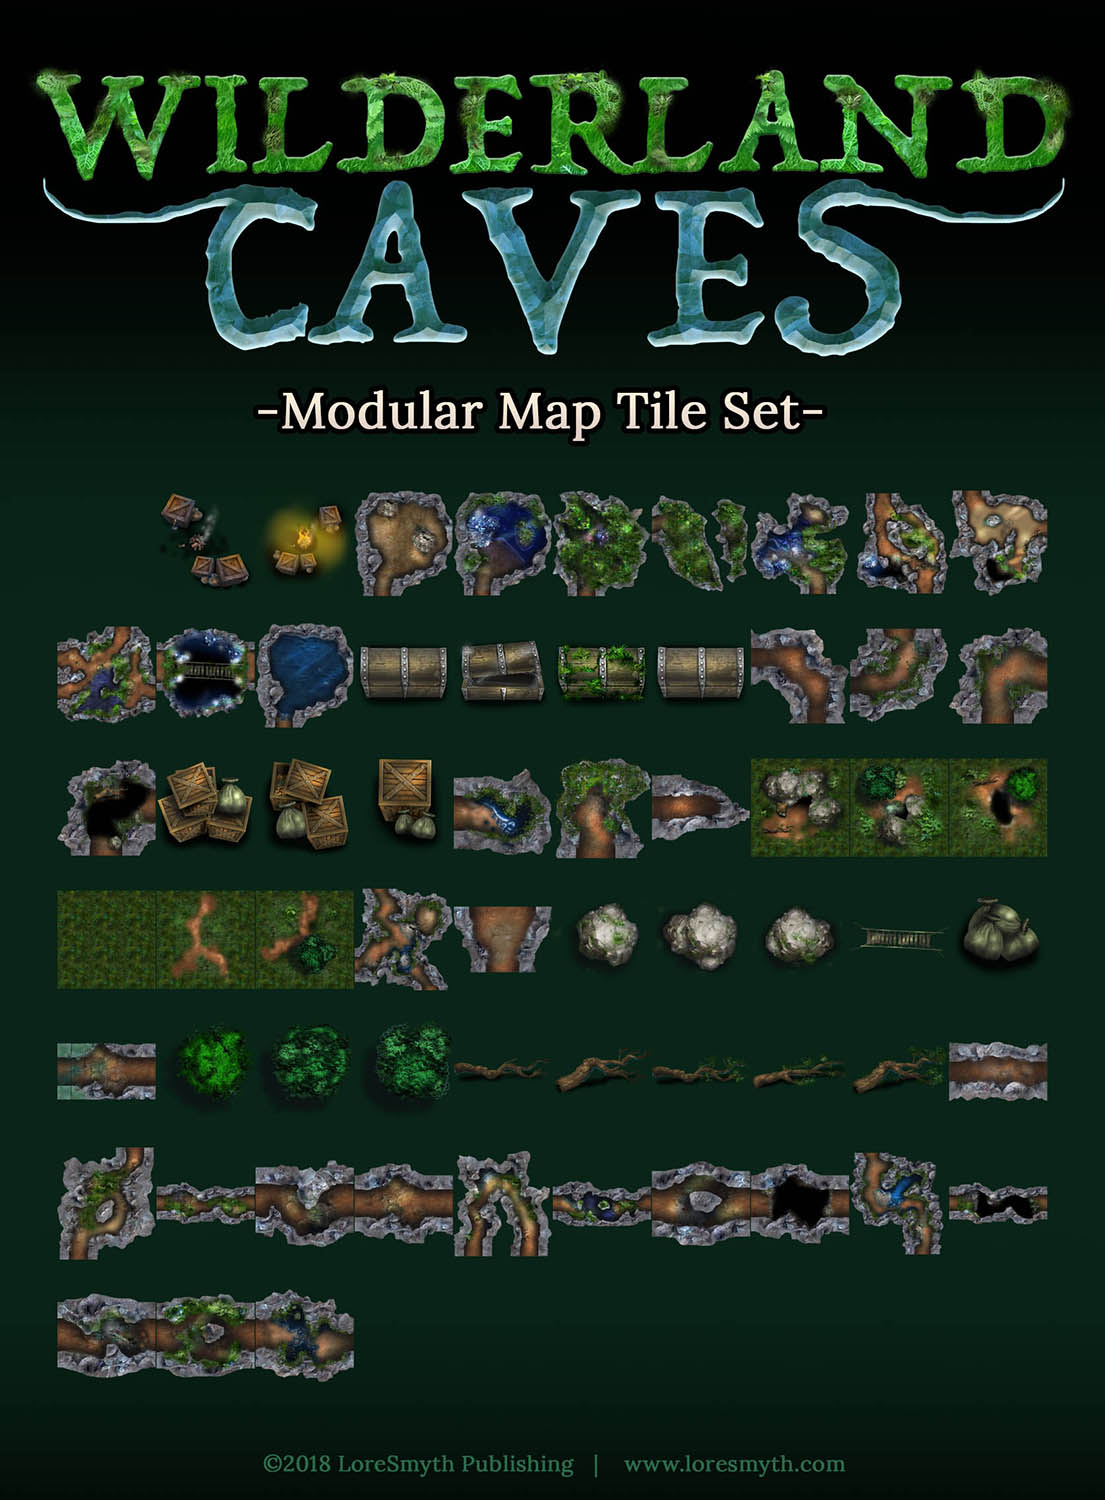 Create Your Own Stunning Dnd Maps With MapSmyth Modular Dungeon Tiles. Subscribe To Our Site To Get 25 Free Maps For D&d And Pathfinder. Wilderland Caves Is A Modular Dungeon Tile Set To Create Dnd Battle Maps Like Natural Caves And Tunnels.